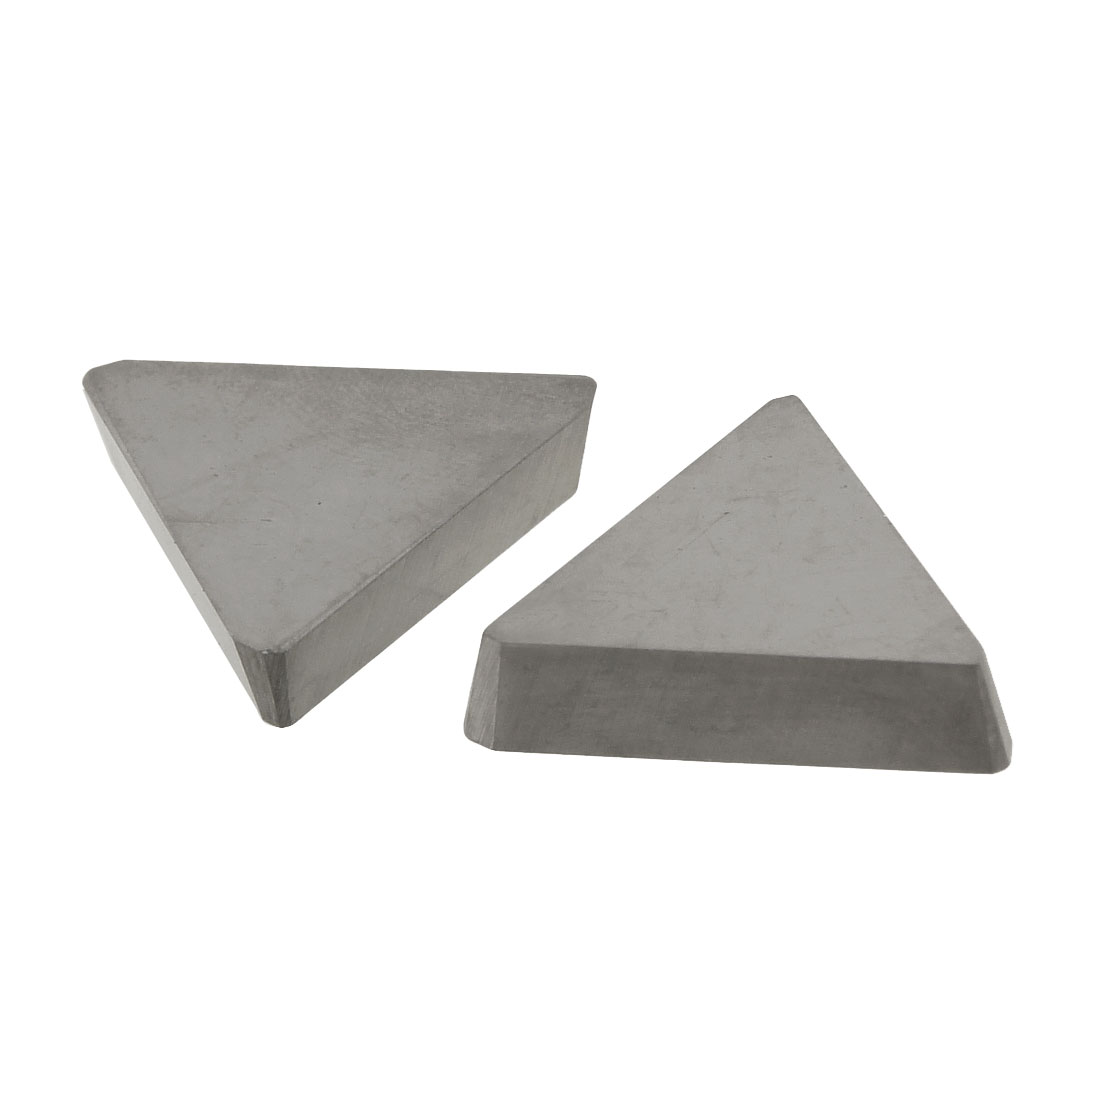 2 Pcs Welding Blade Triangular Hard Alloy Cemented Carbide Inserts for Turning-lathe